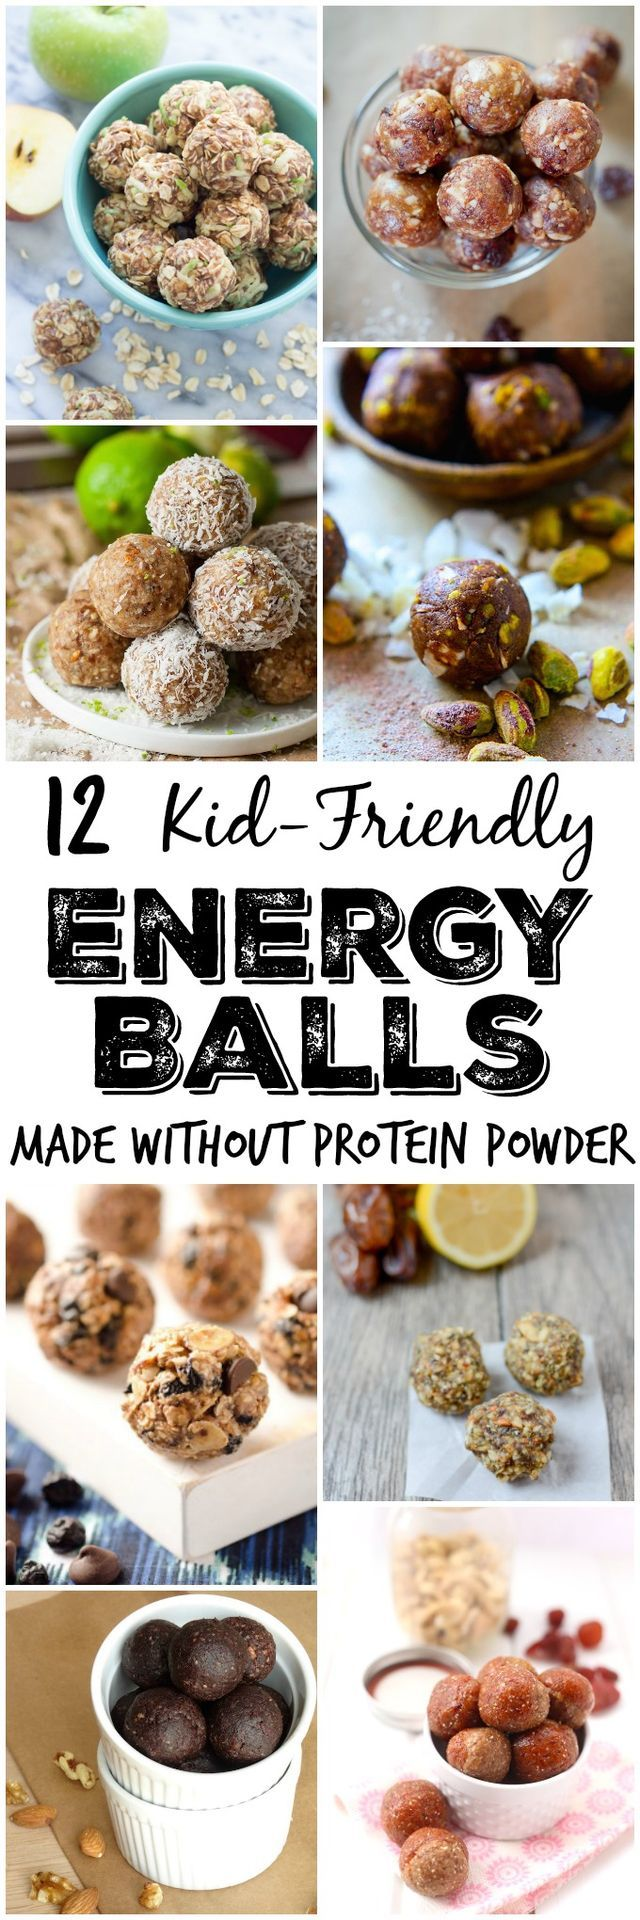 12 Kid-Friendly Energy Ball Recipes Made Without Protein Powder | The Lean Green Bean | Bloglovin'